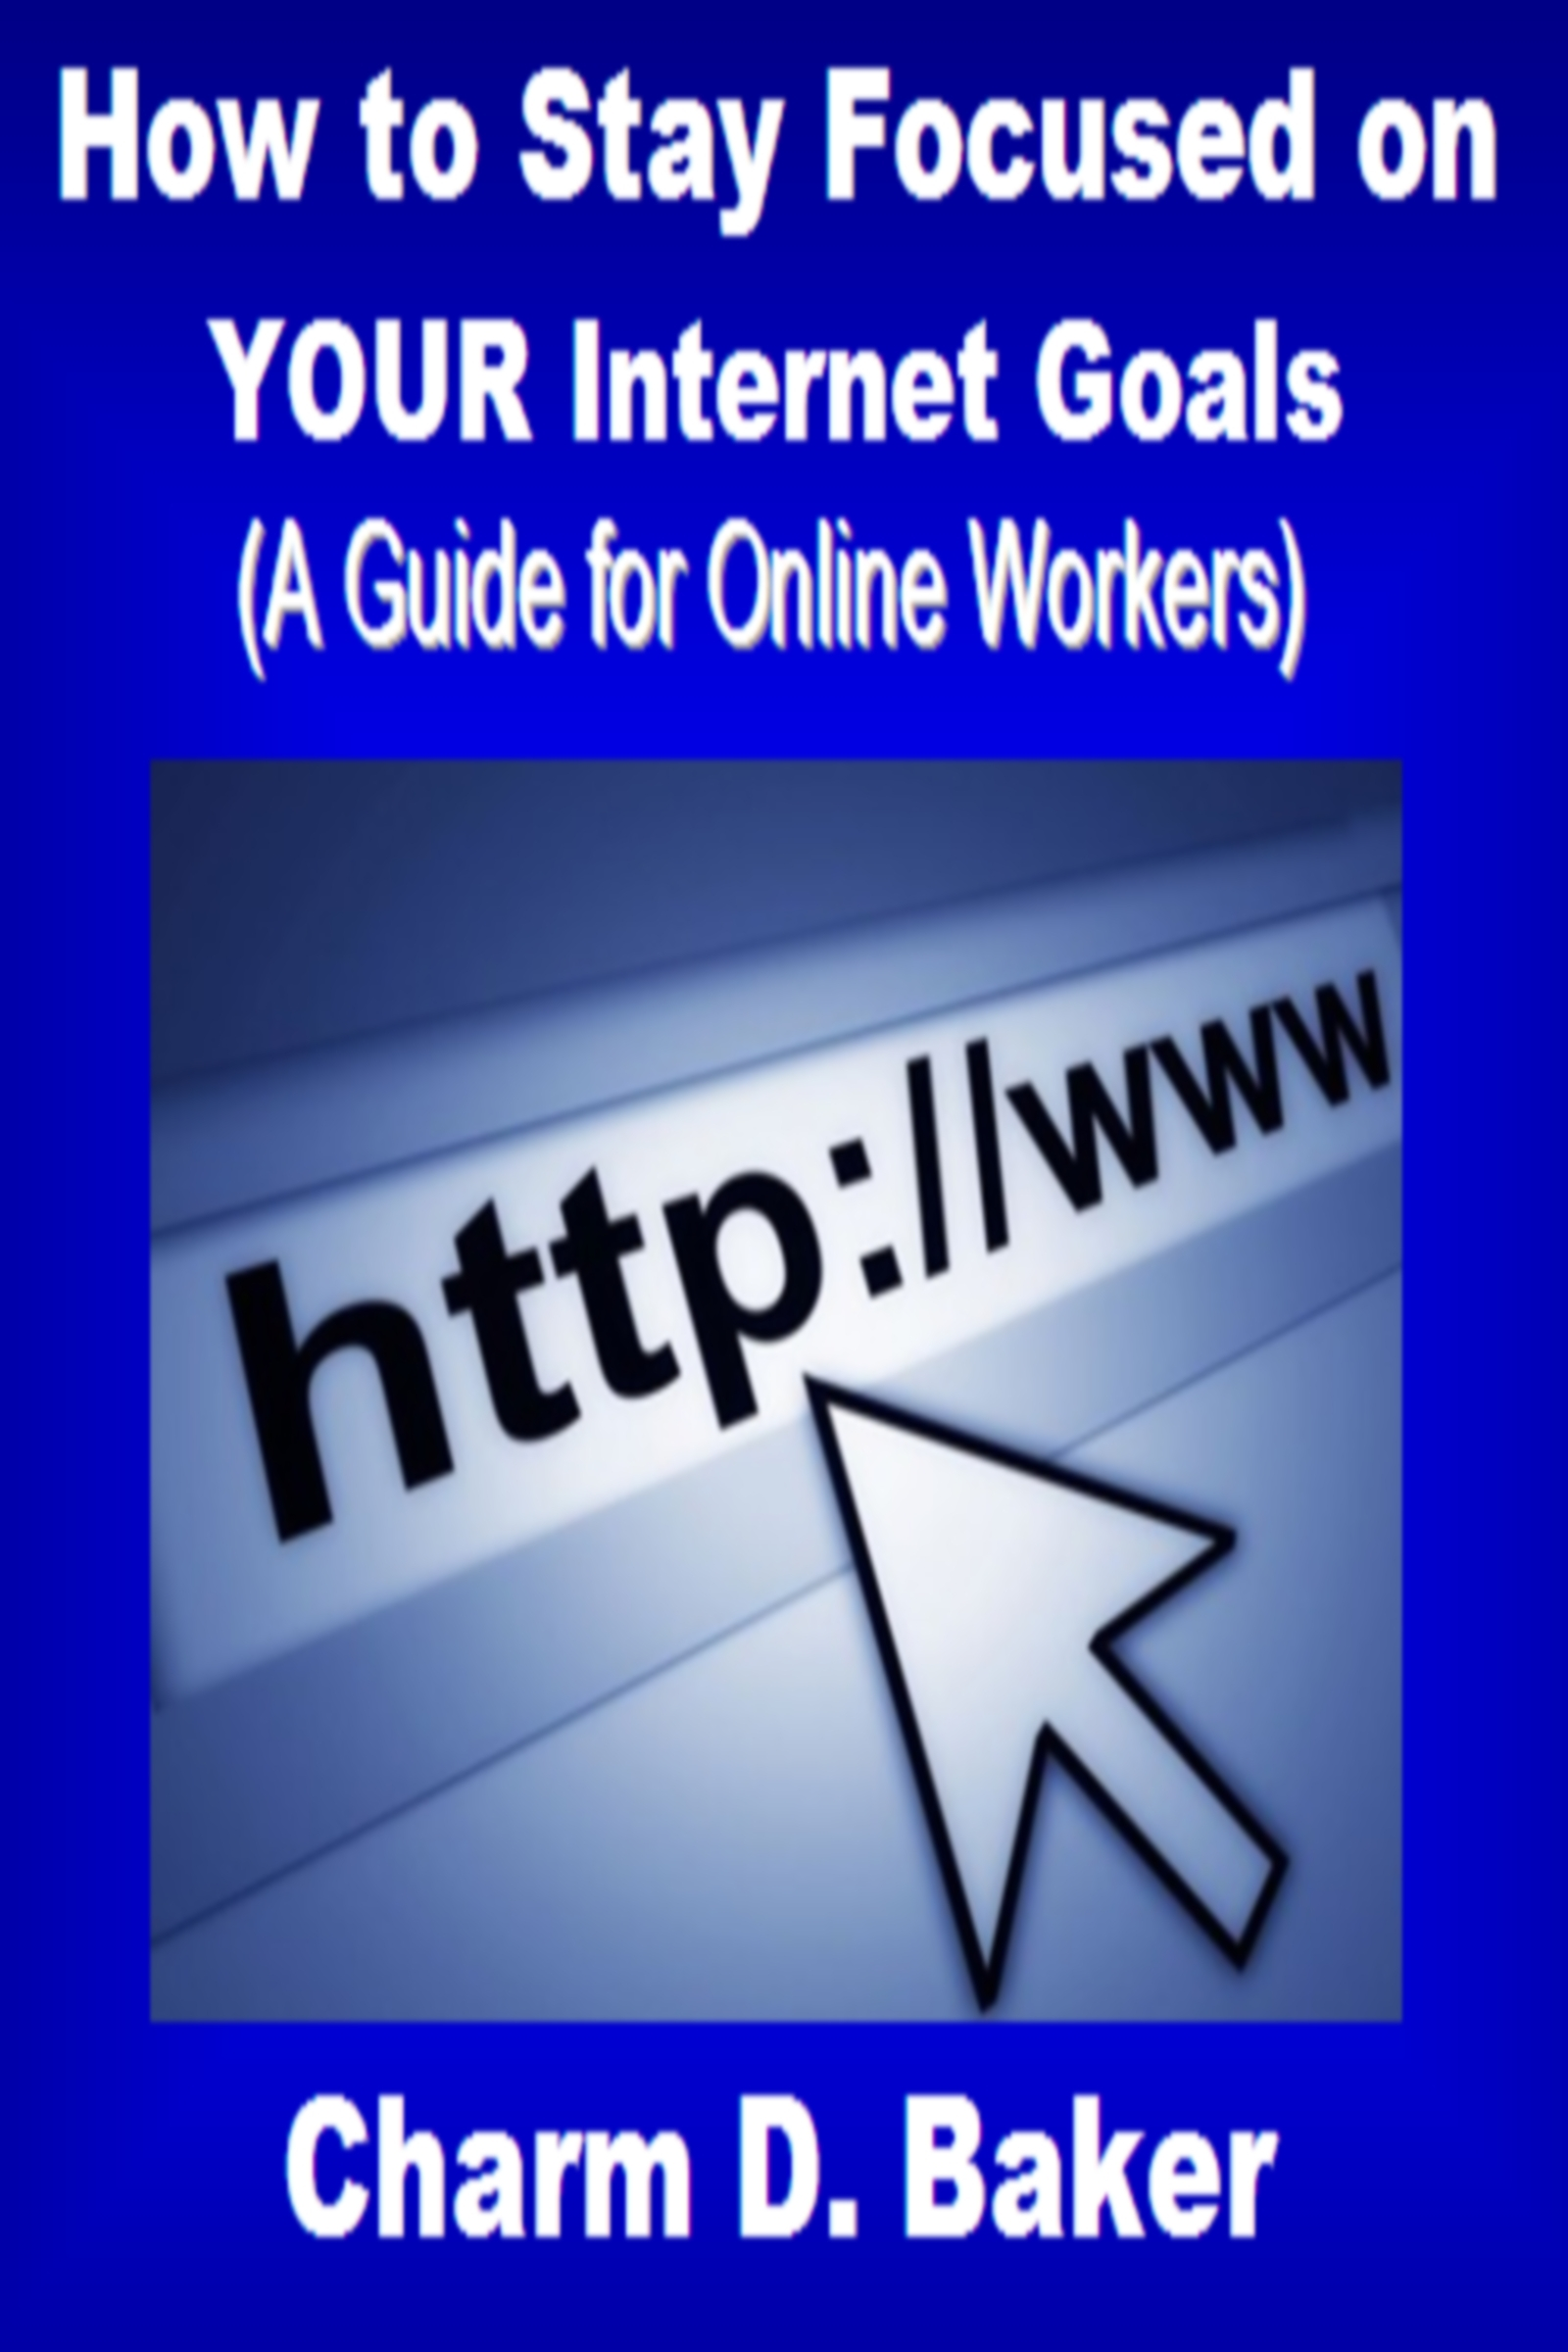 How to Stay Focused on Your Internet Goals  (A Self Help Guide to Working Online)